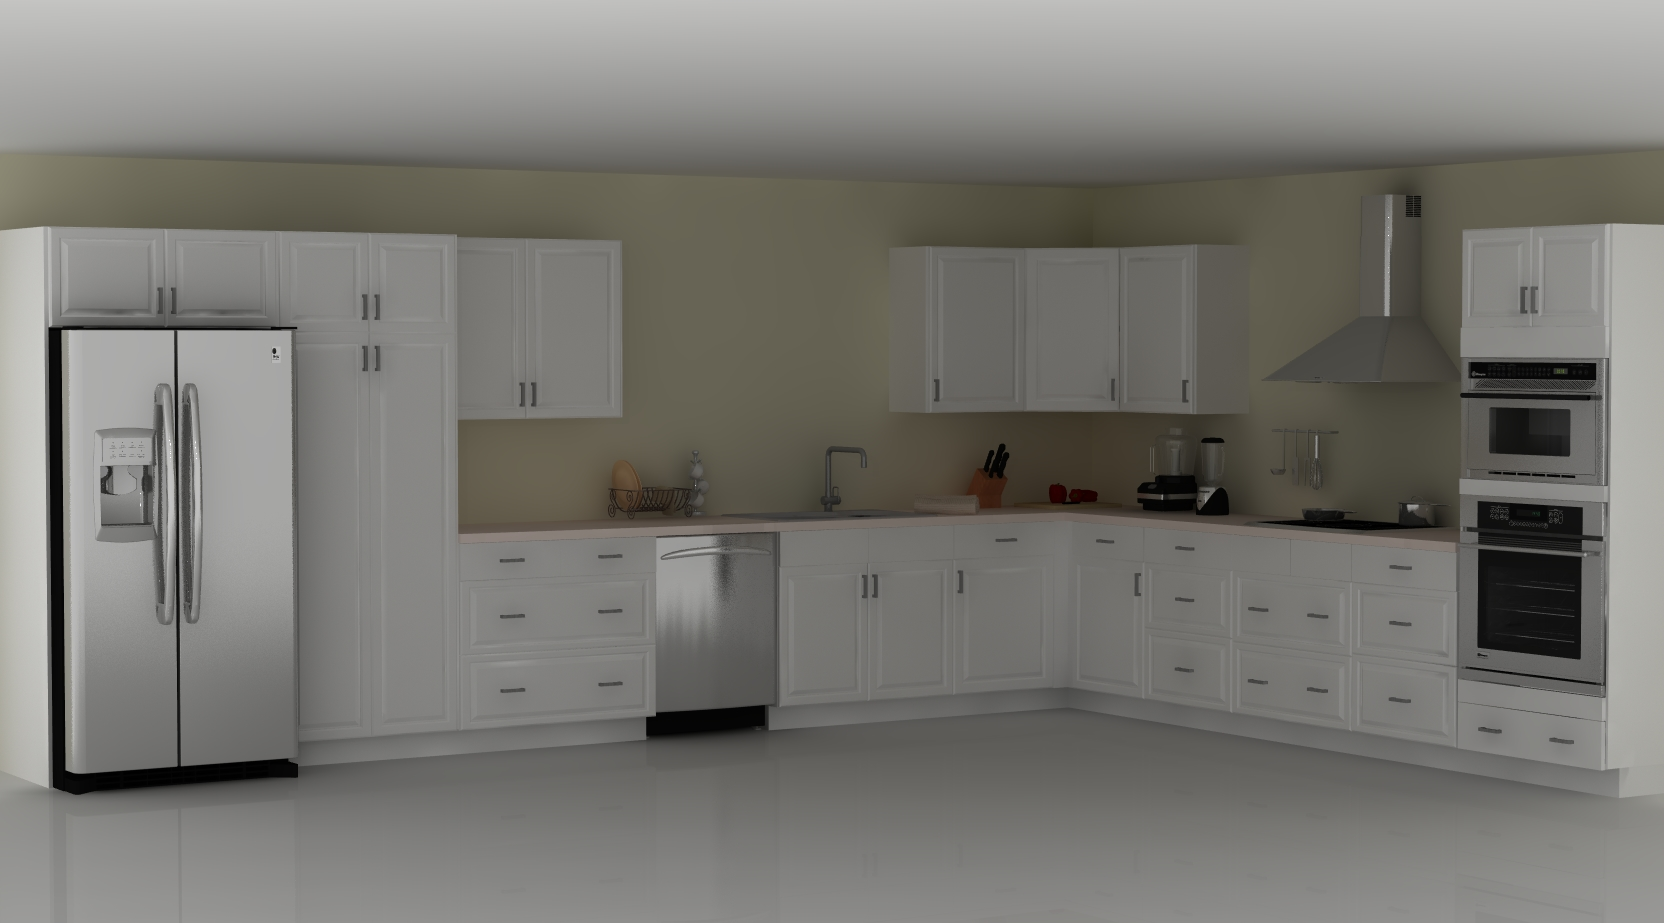 Kitchen Models Ikea ikea kitchen designer tips: pros and cons of an l-shaped layout